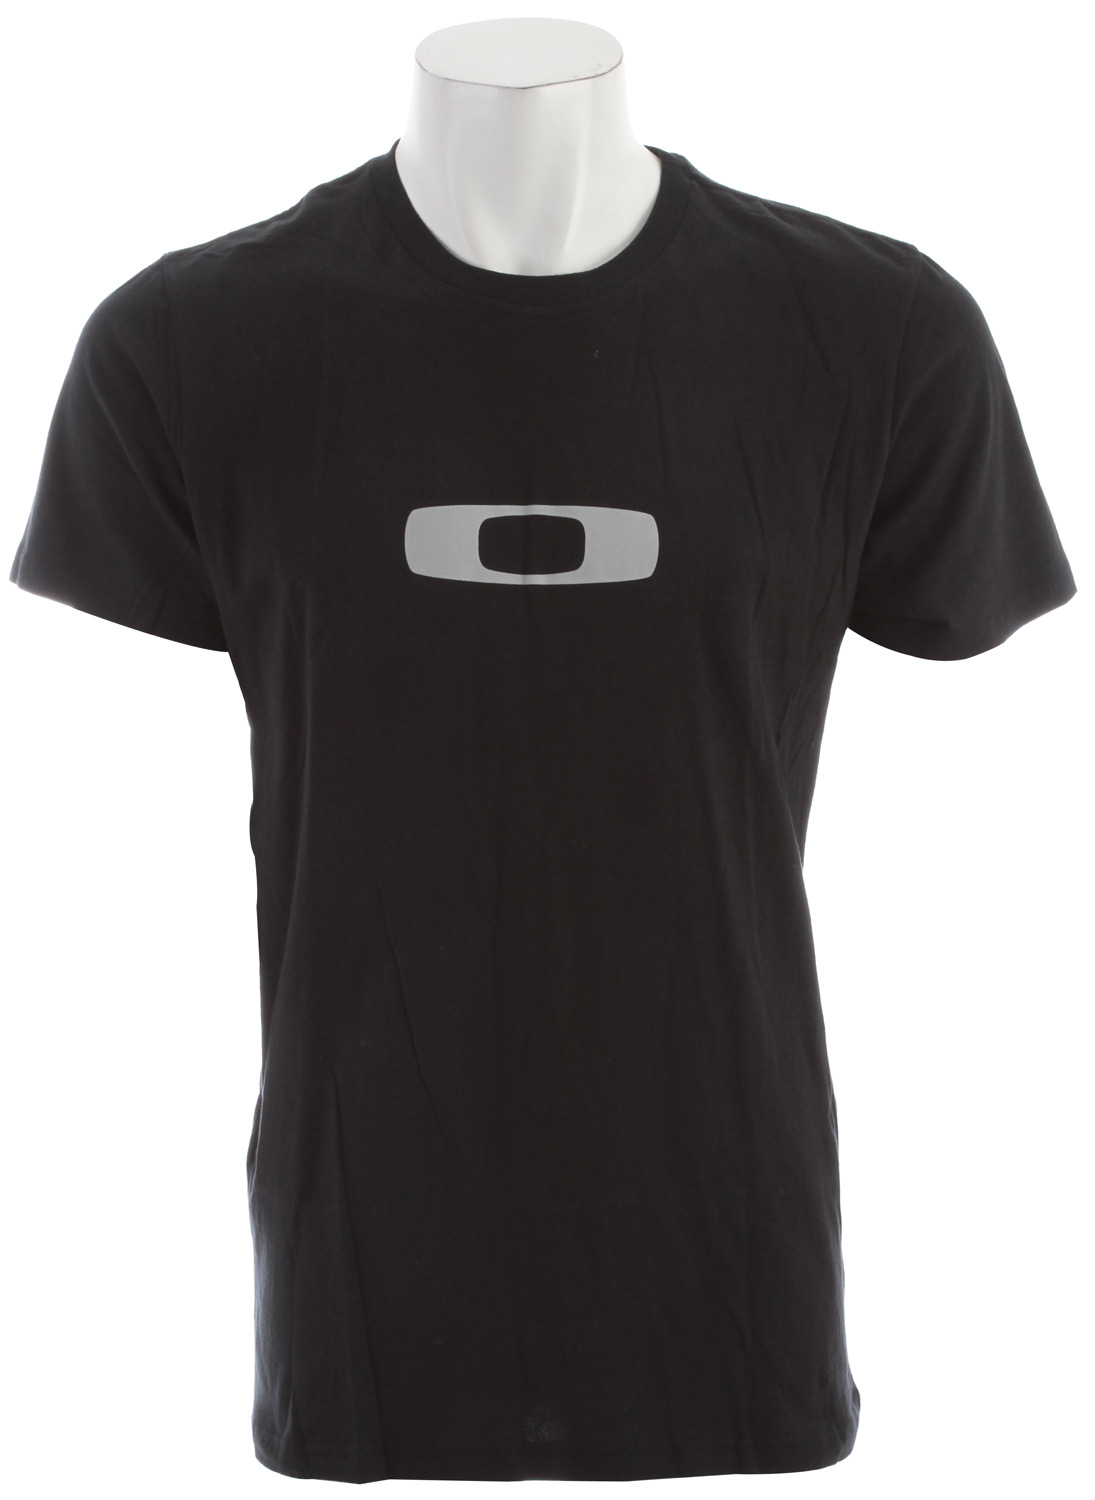 Key Features of the Oakley Square Me T-Shirt: 100% cotton T-shirt Crew neckline Screen printed icon on front Fit: Regular - $12.95